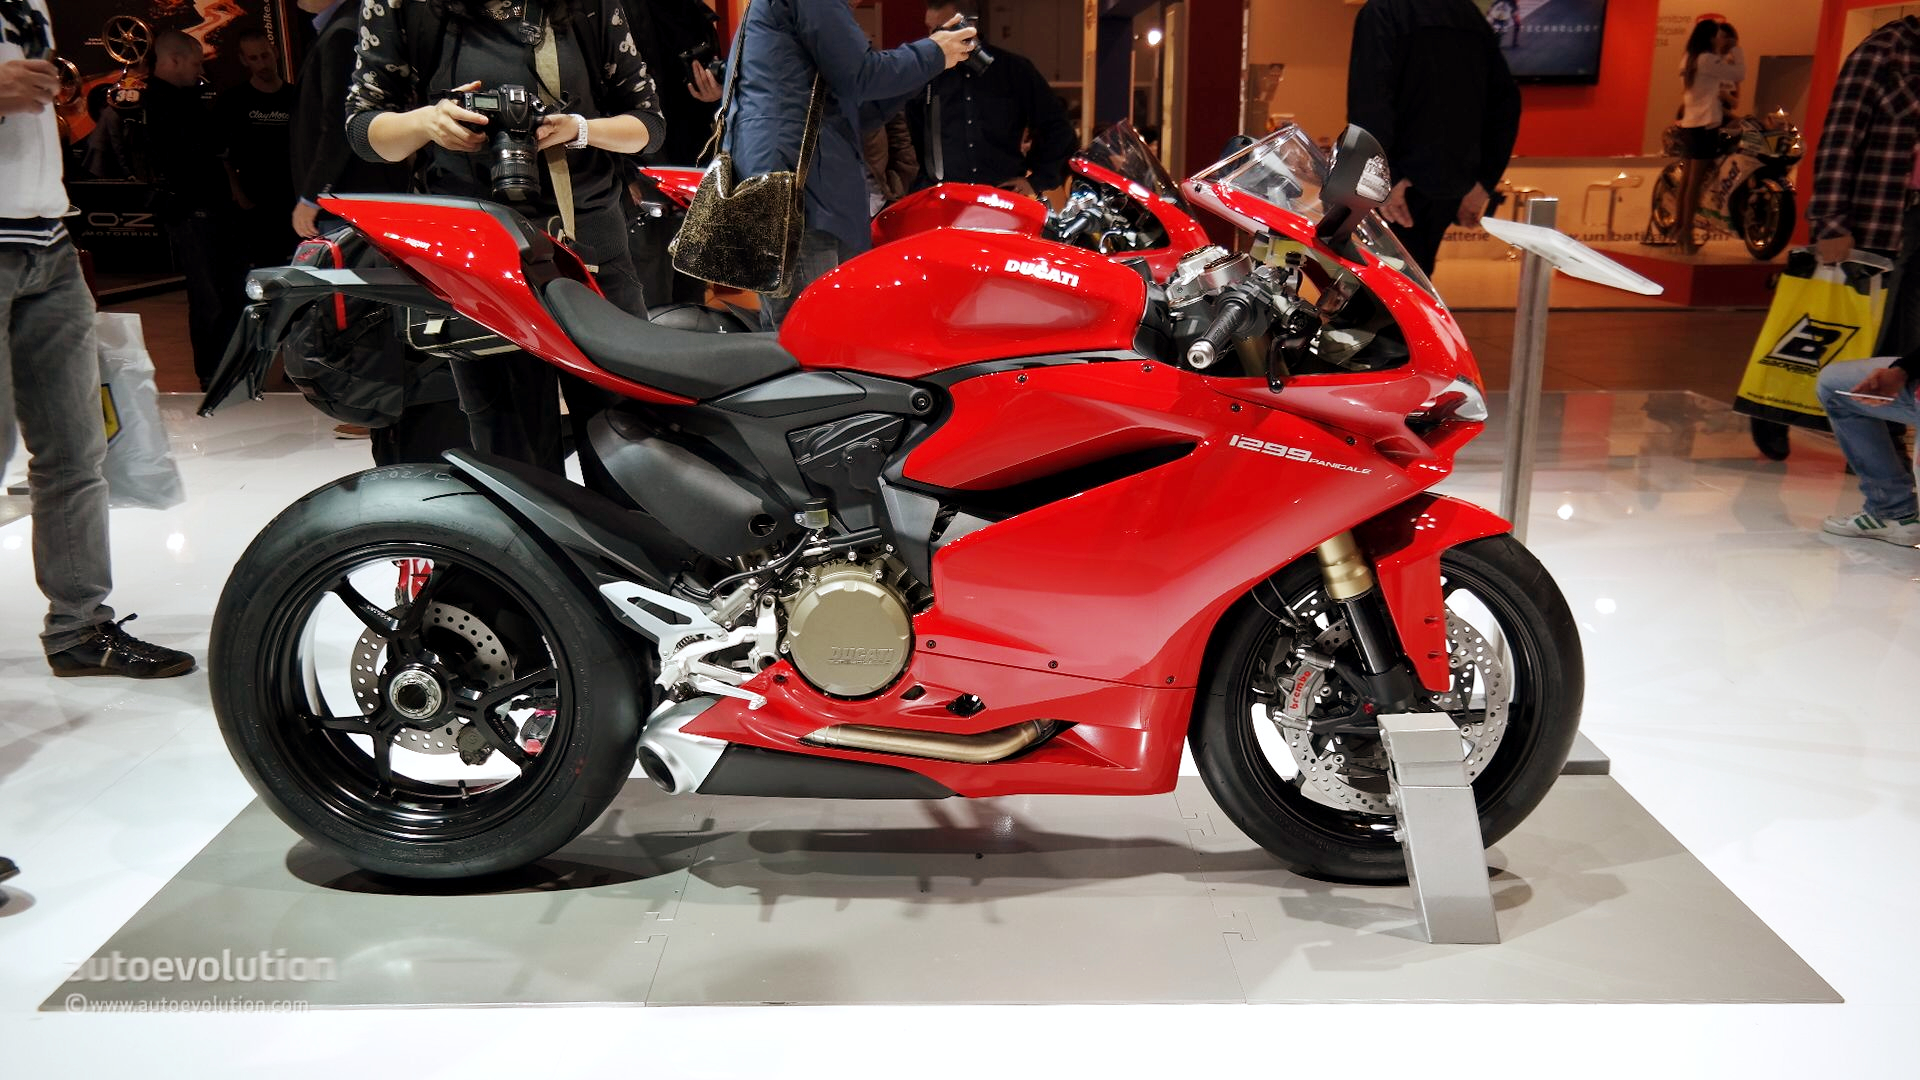 2015 Ducati 1299 Panigale S Unveiled: the Silicon Superbike [Live